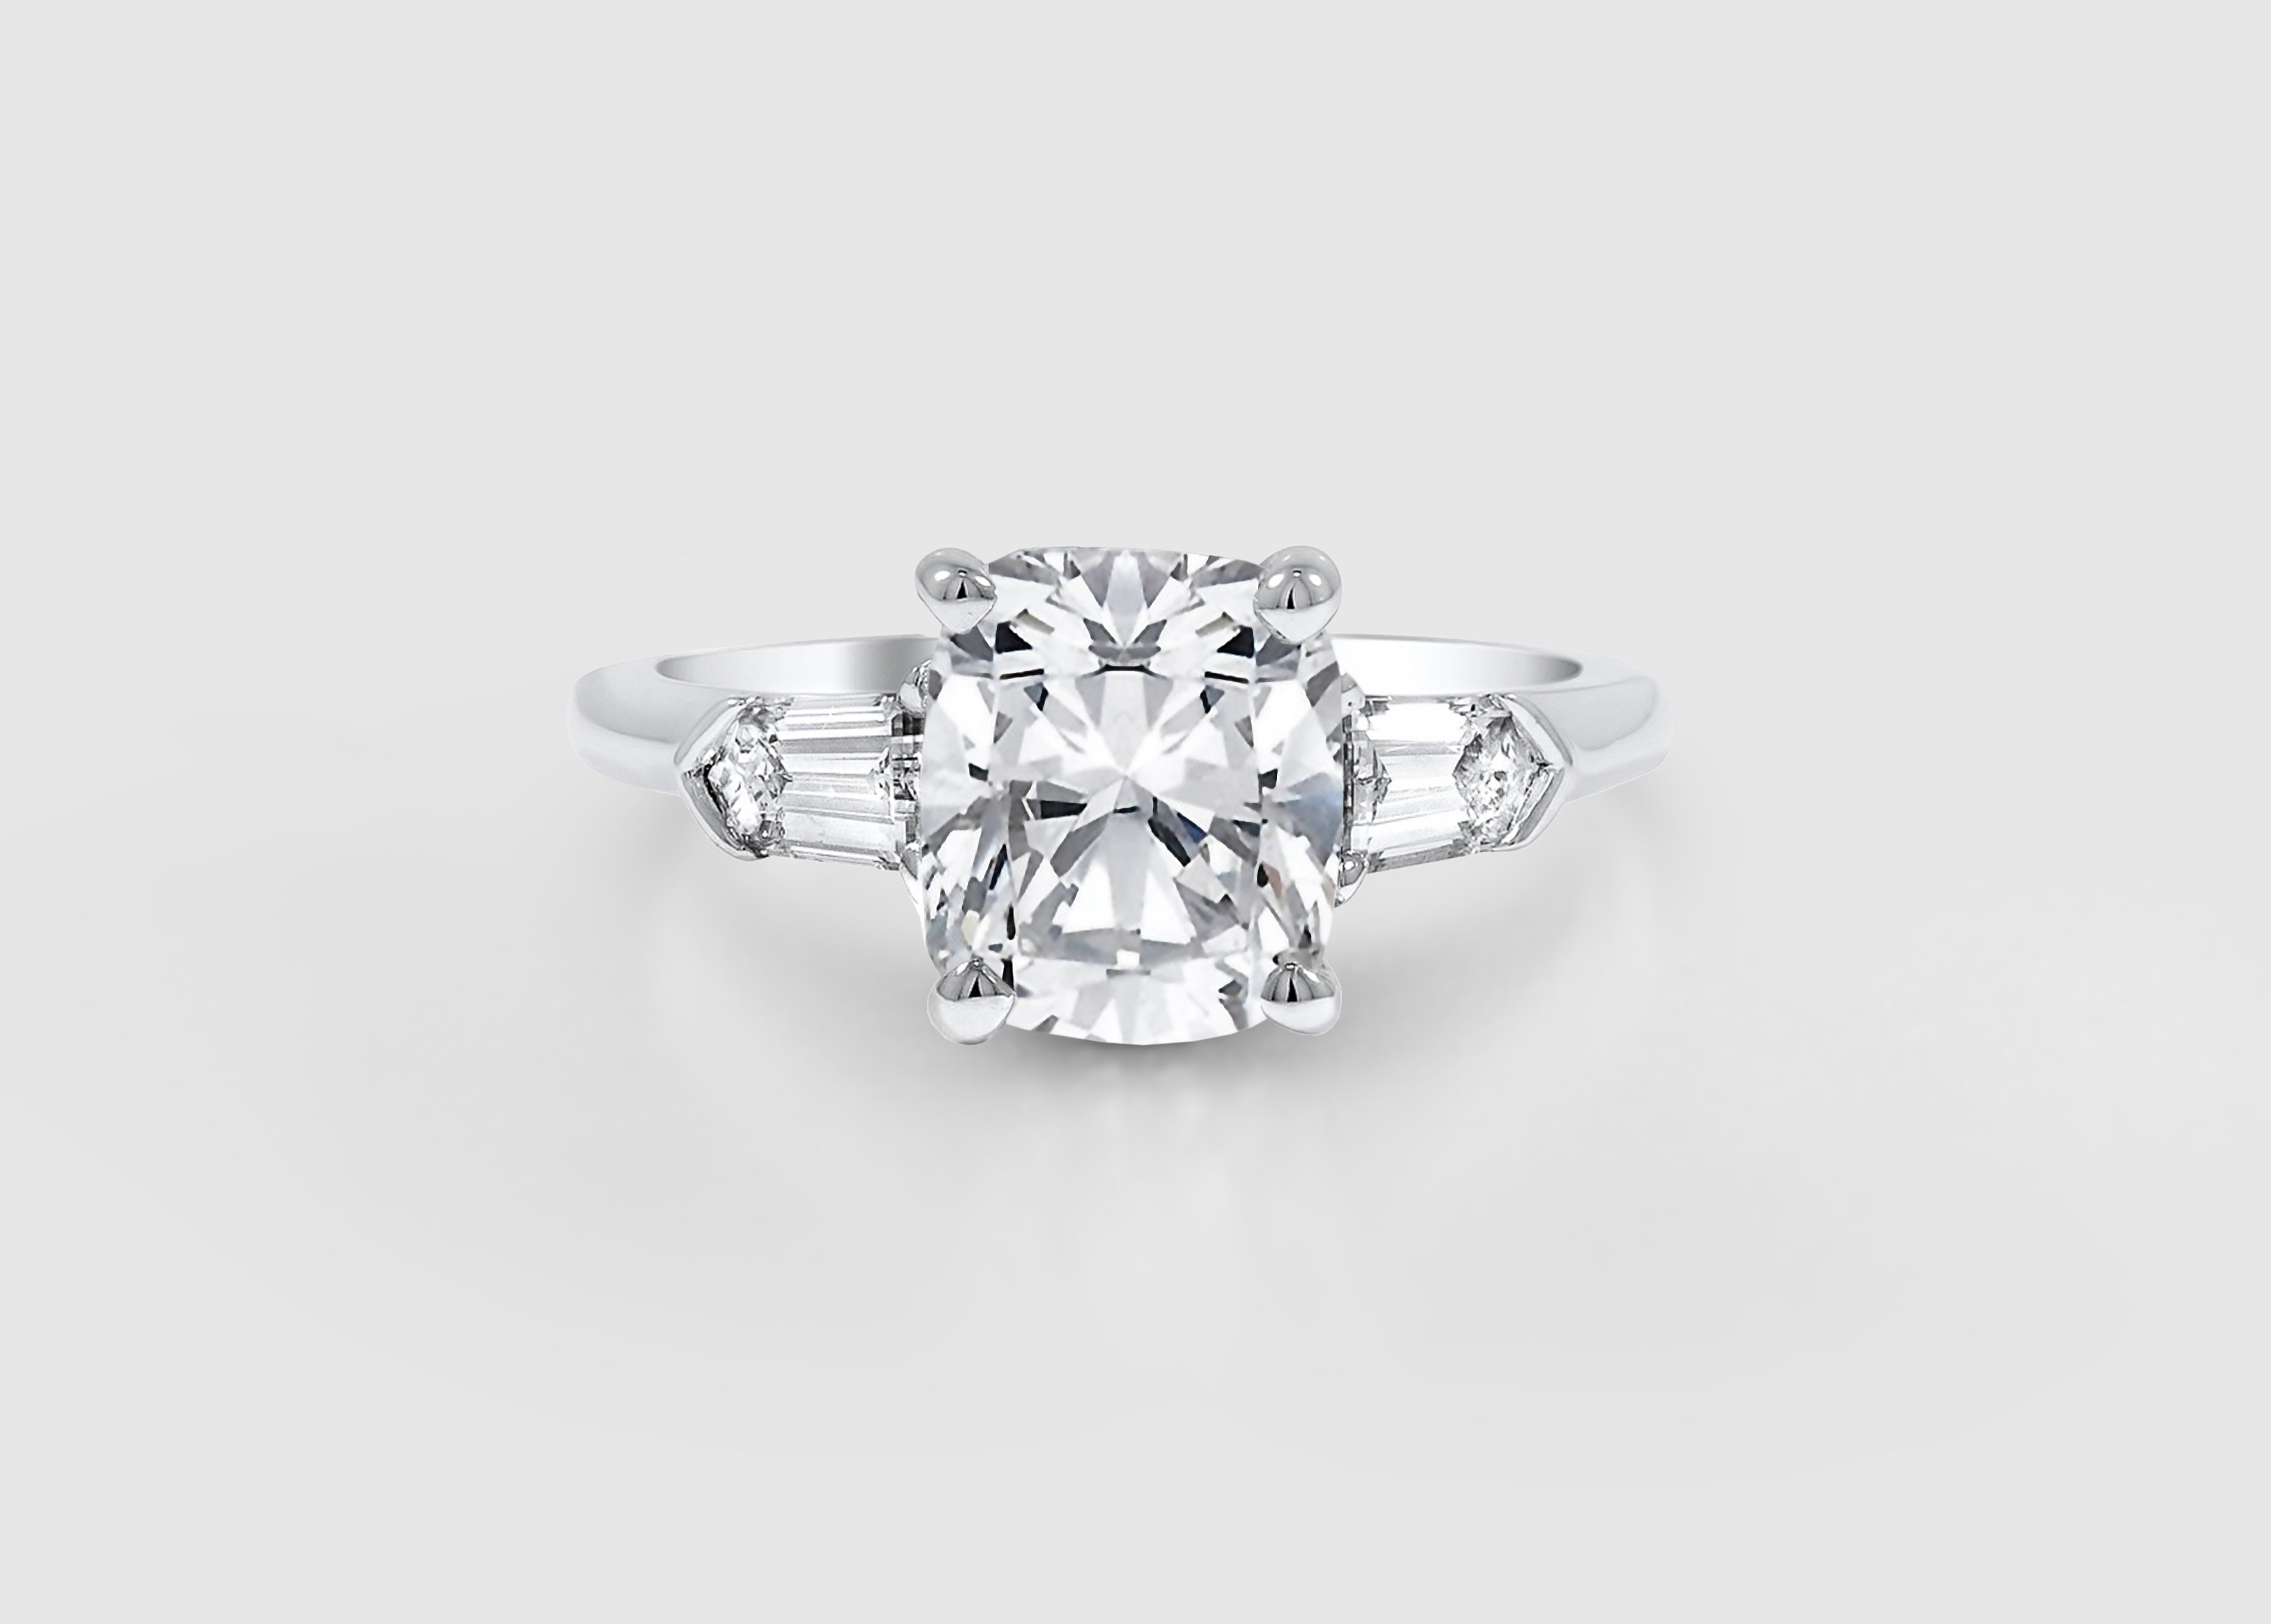 womens picked diamond diamonds beautiful stone a this hand additional are round and two guard women center features cut surround ring dazzling s pin ninety rings the